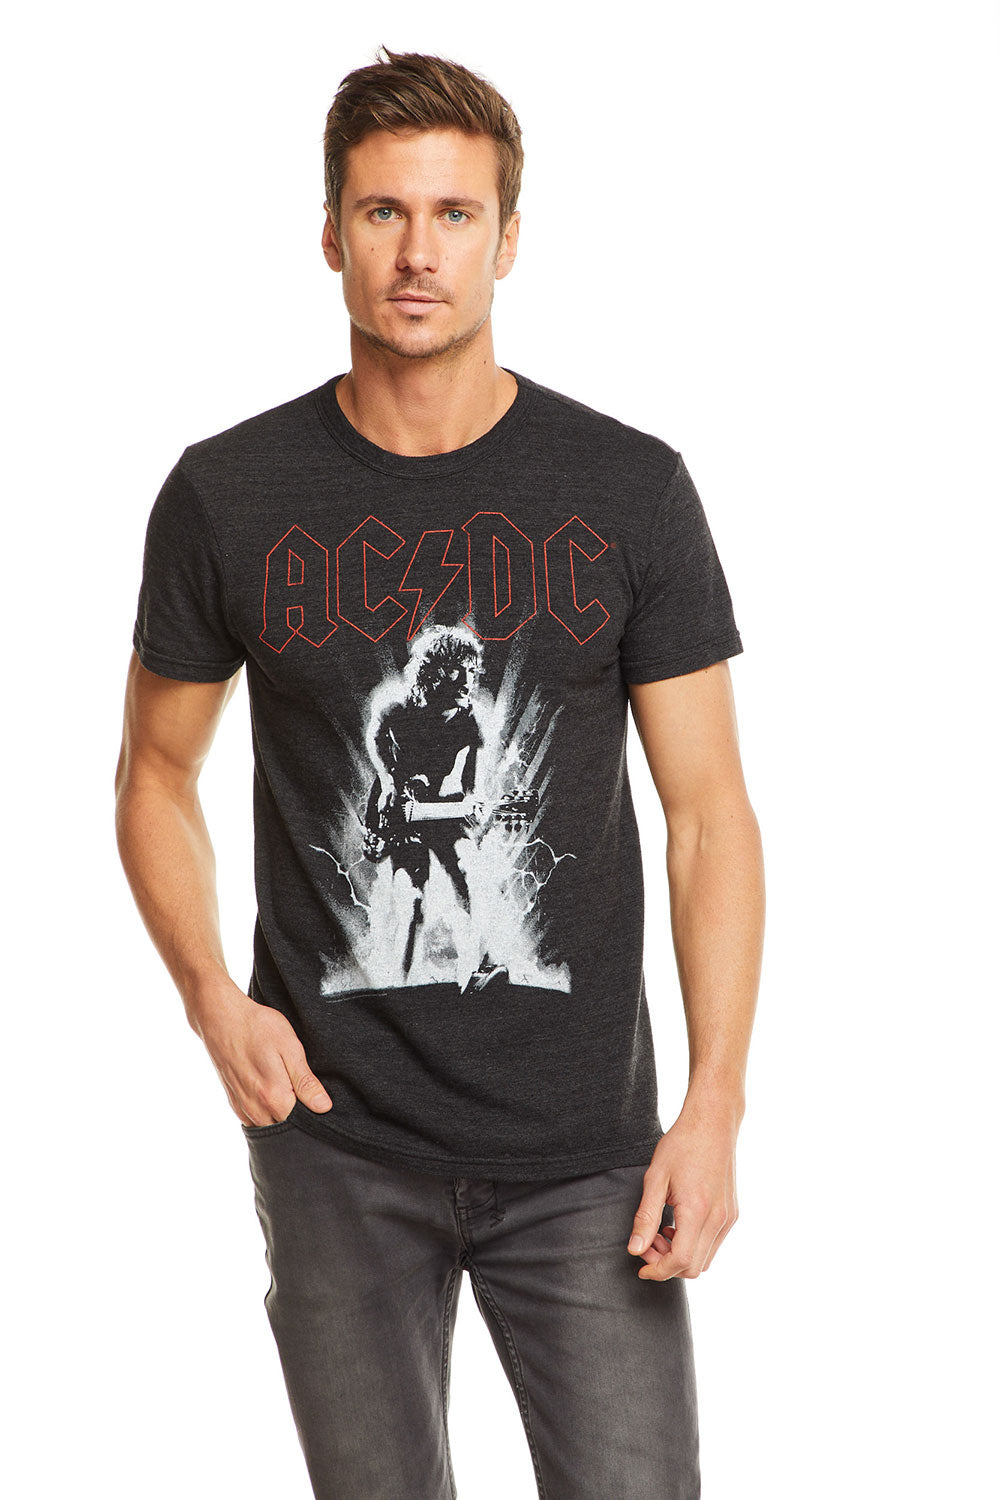 8789468fb ACDC - Ballbreaker, MENS, chaserbrand.com,chaser clothing,chaser apparel,